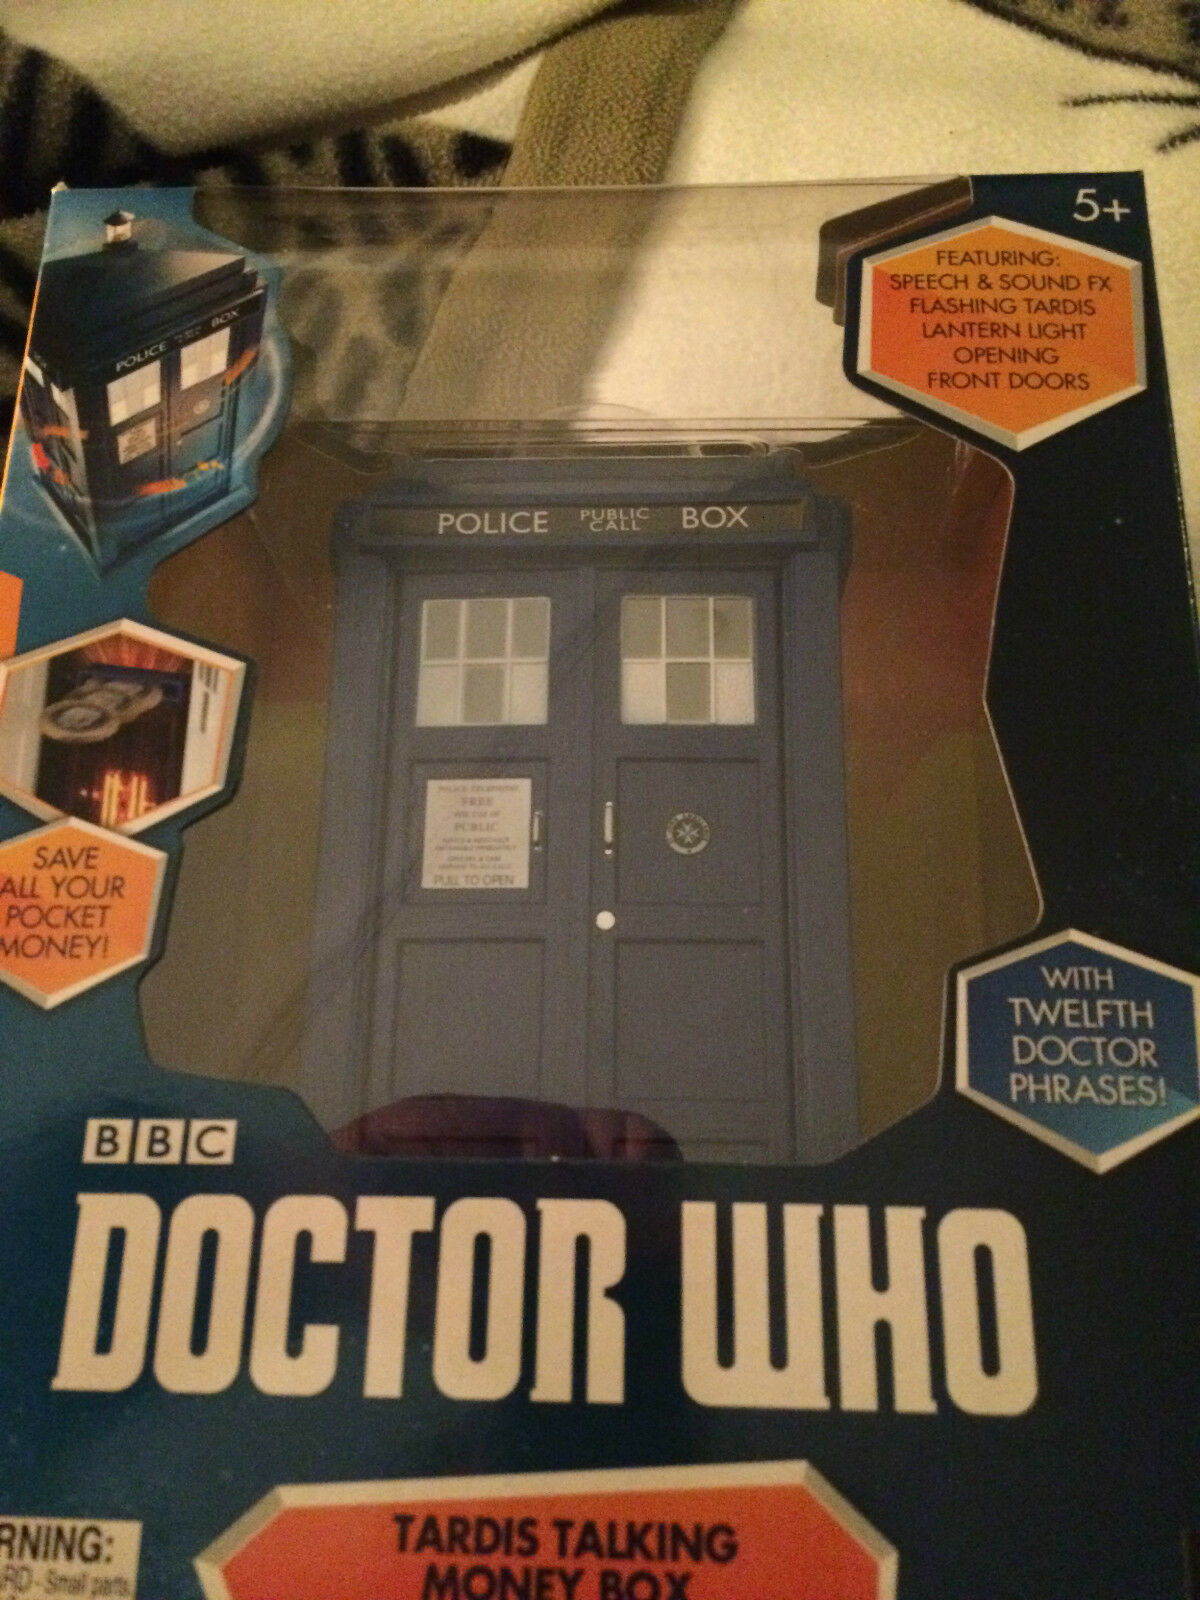 Doctor who  12th doctor tardis talking  money box